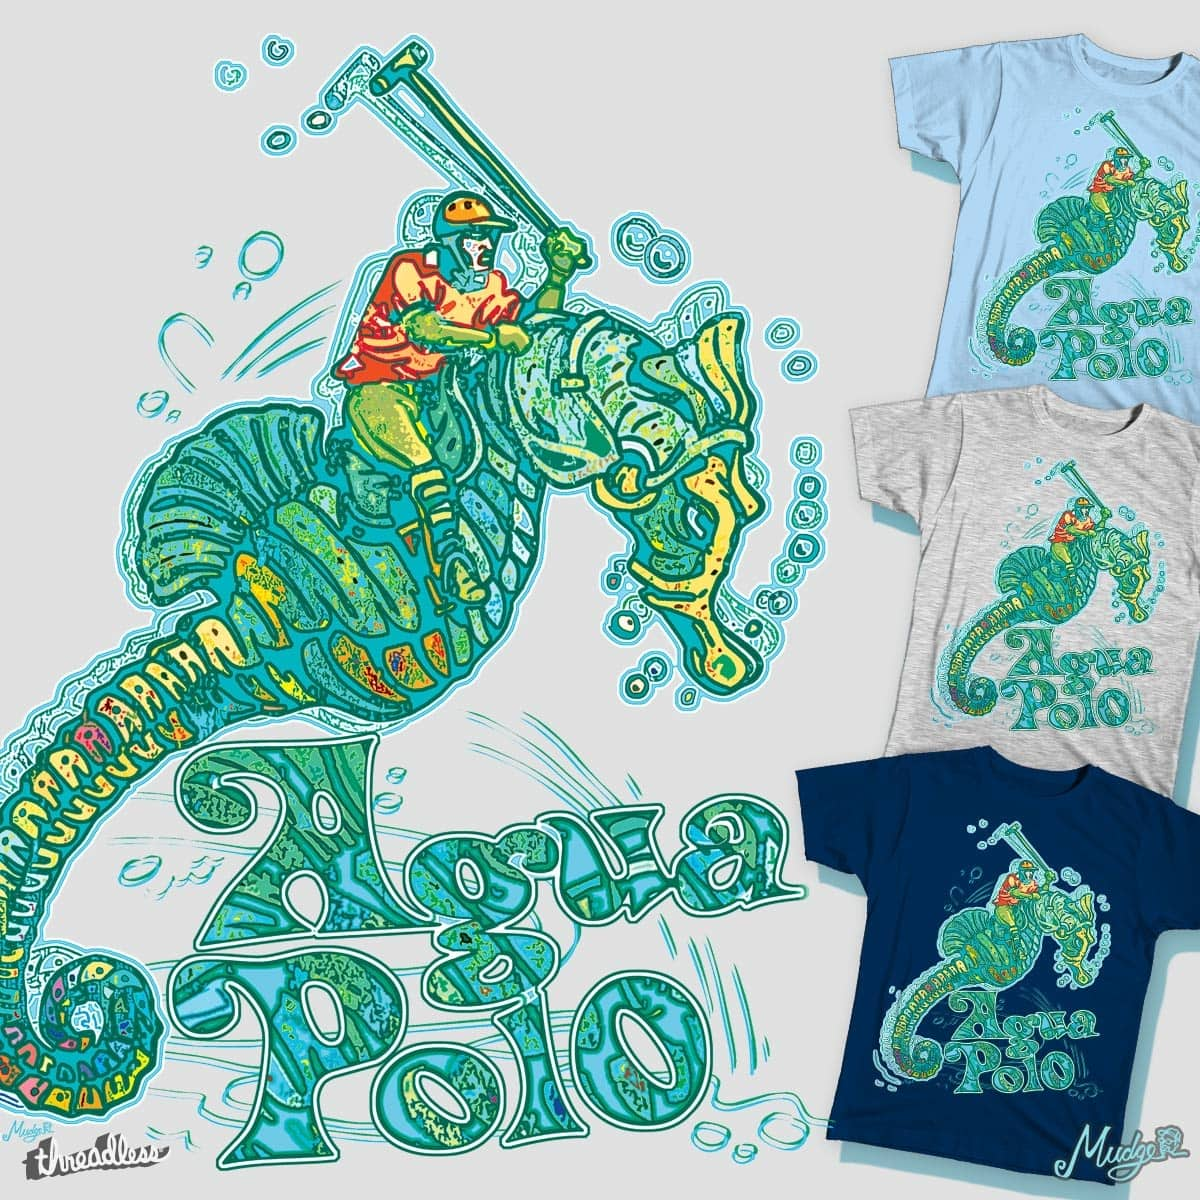 Agua Polo by MudgeStudios on Threadless